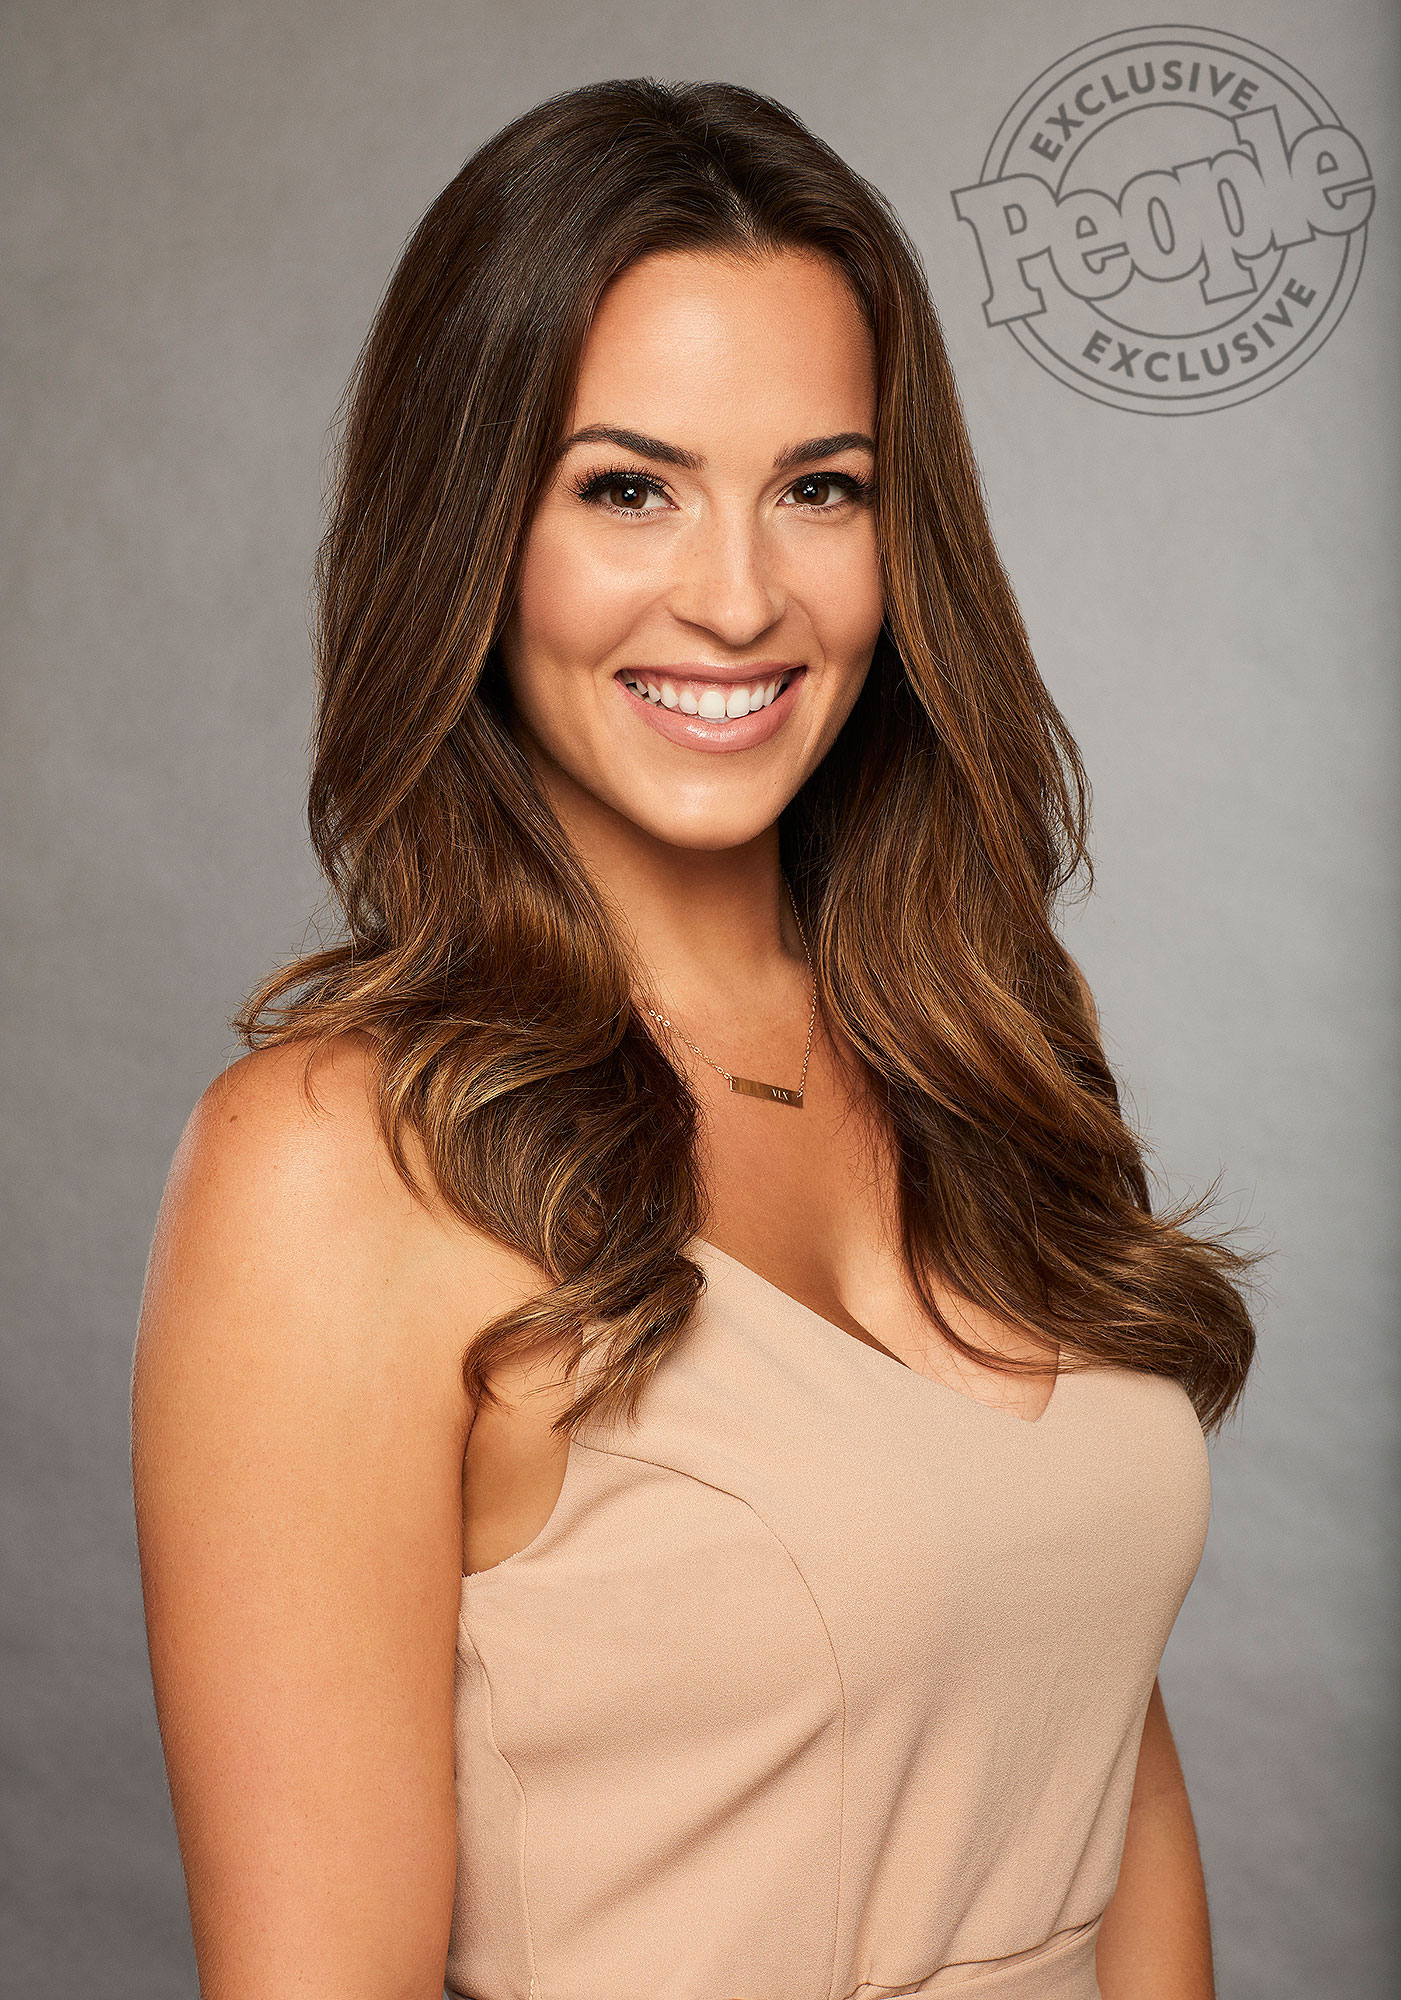 See Every Woman Vying for Arie Luyendyk Jr.'s Heart on The Bachelor